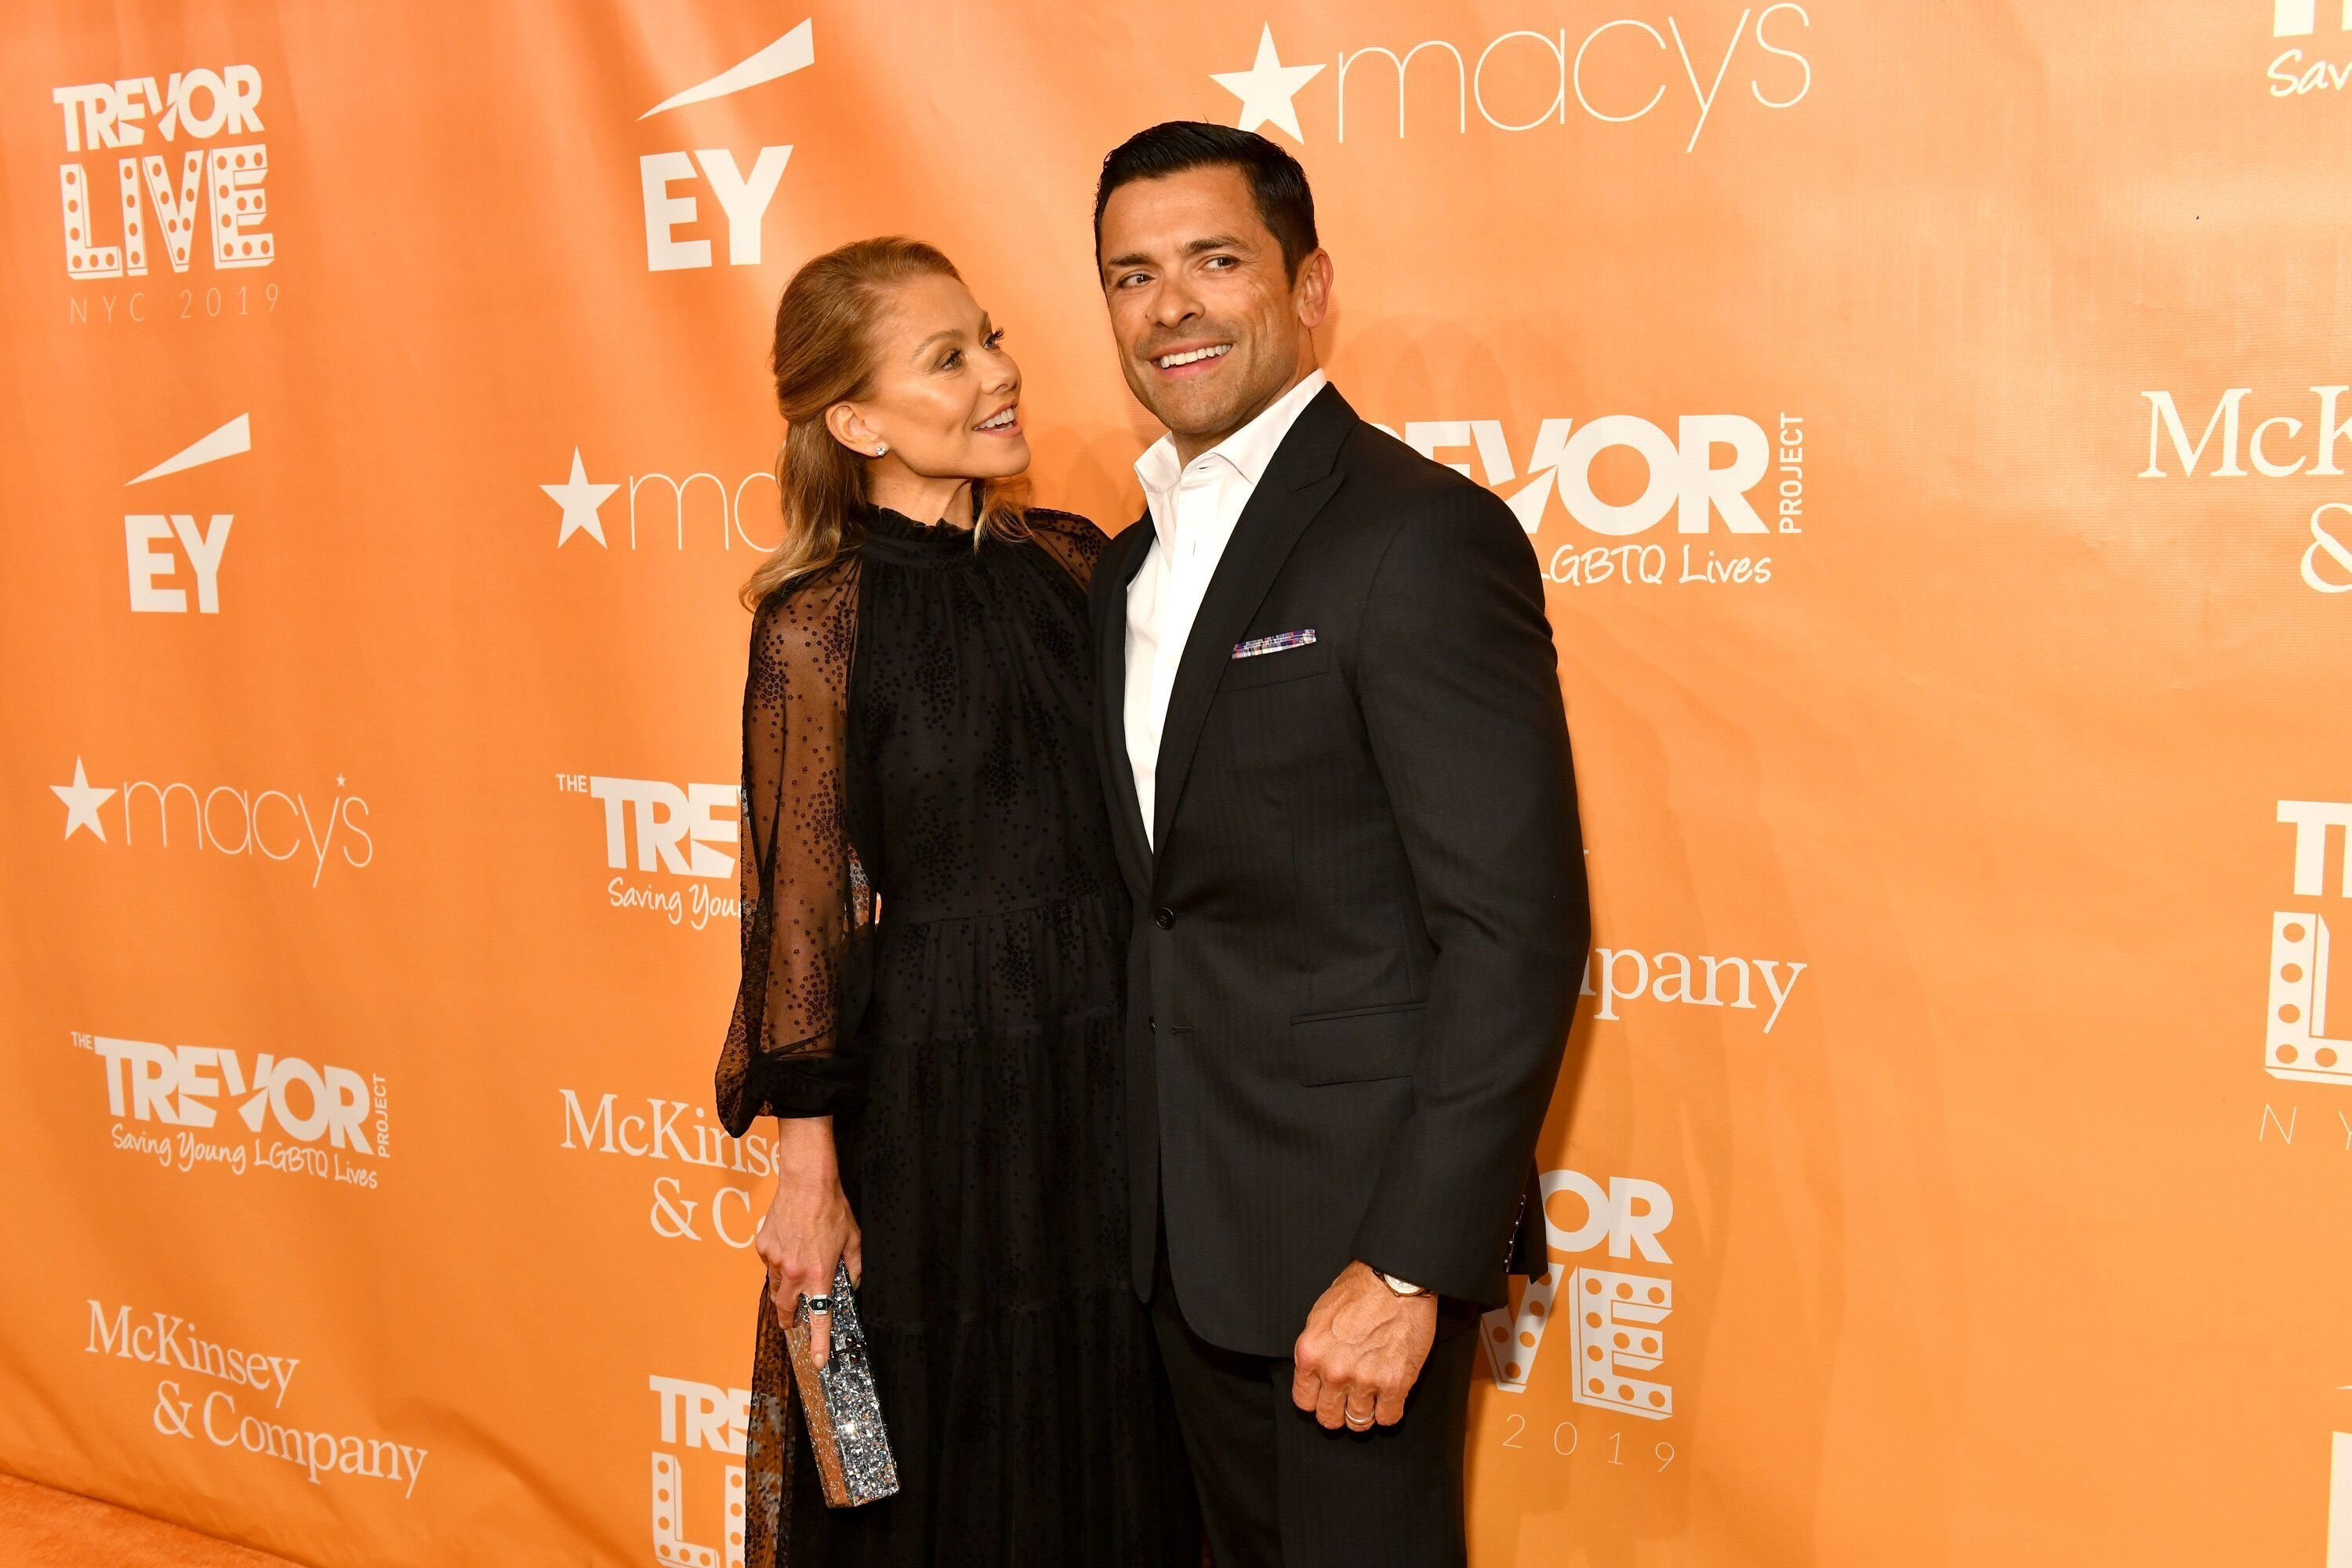 Kelly Ripa and Mark Consuelos at the TrevorLIVE New York Gala on June 17, 2019, in New York City | Photo: Dia Dipasupil/Getty Images